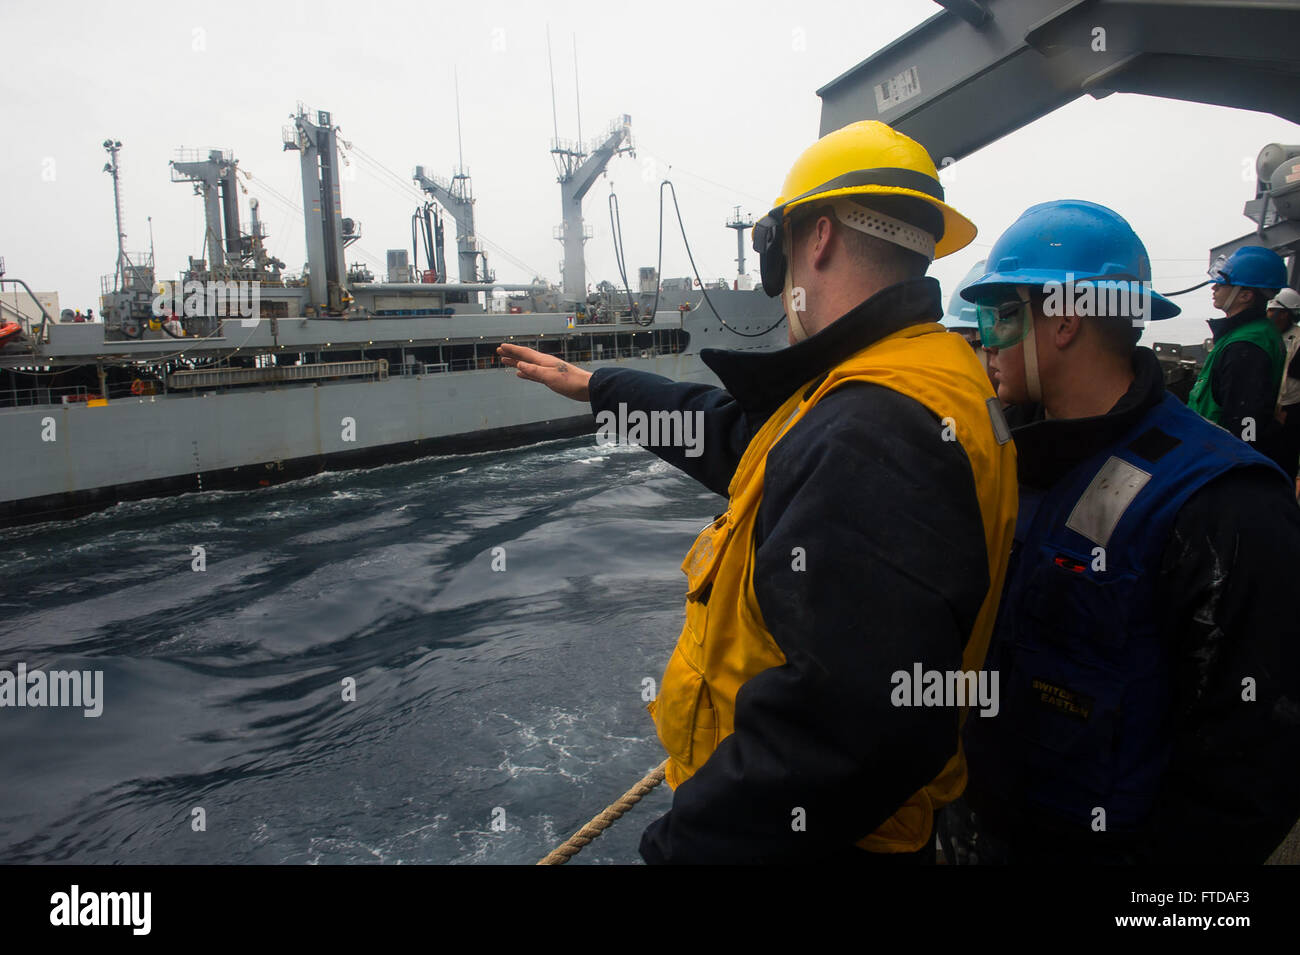 150323-N-FQ994-064 MEDITERRANEAN SEA (March 23, 2015)  Sailors aboard USS Ross (DDG 71) analyze an ongoing underway - Stock Image